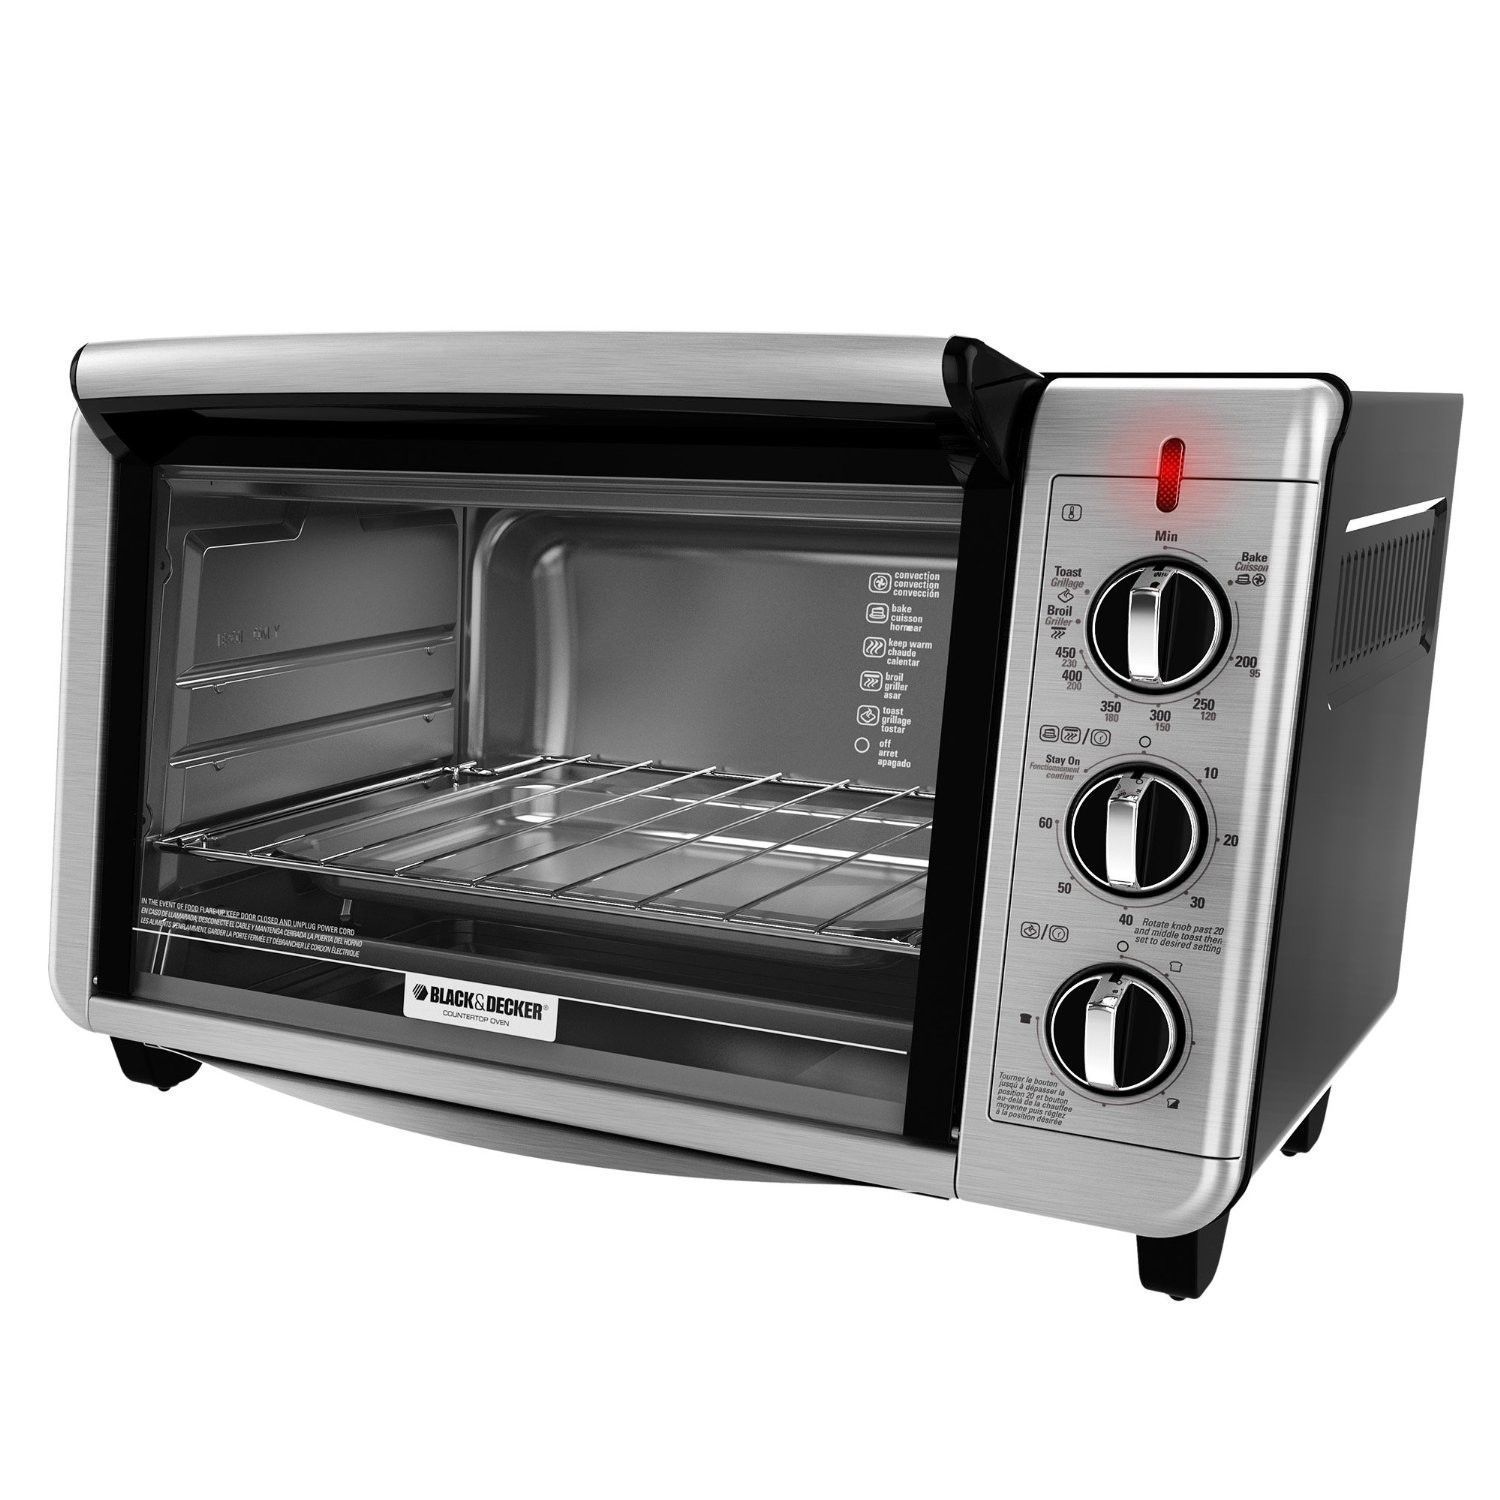 Convection Toaster Oven Convection Toaster Oven Toaster Oven